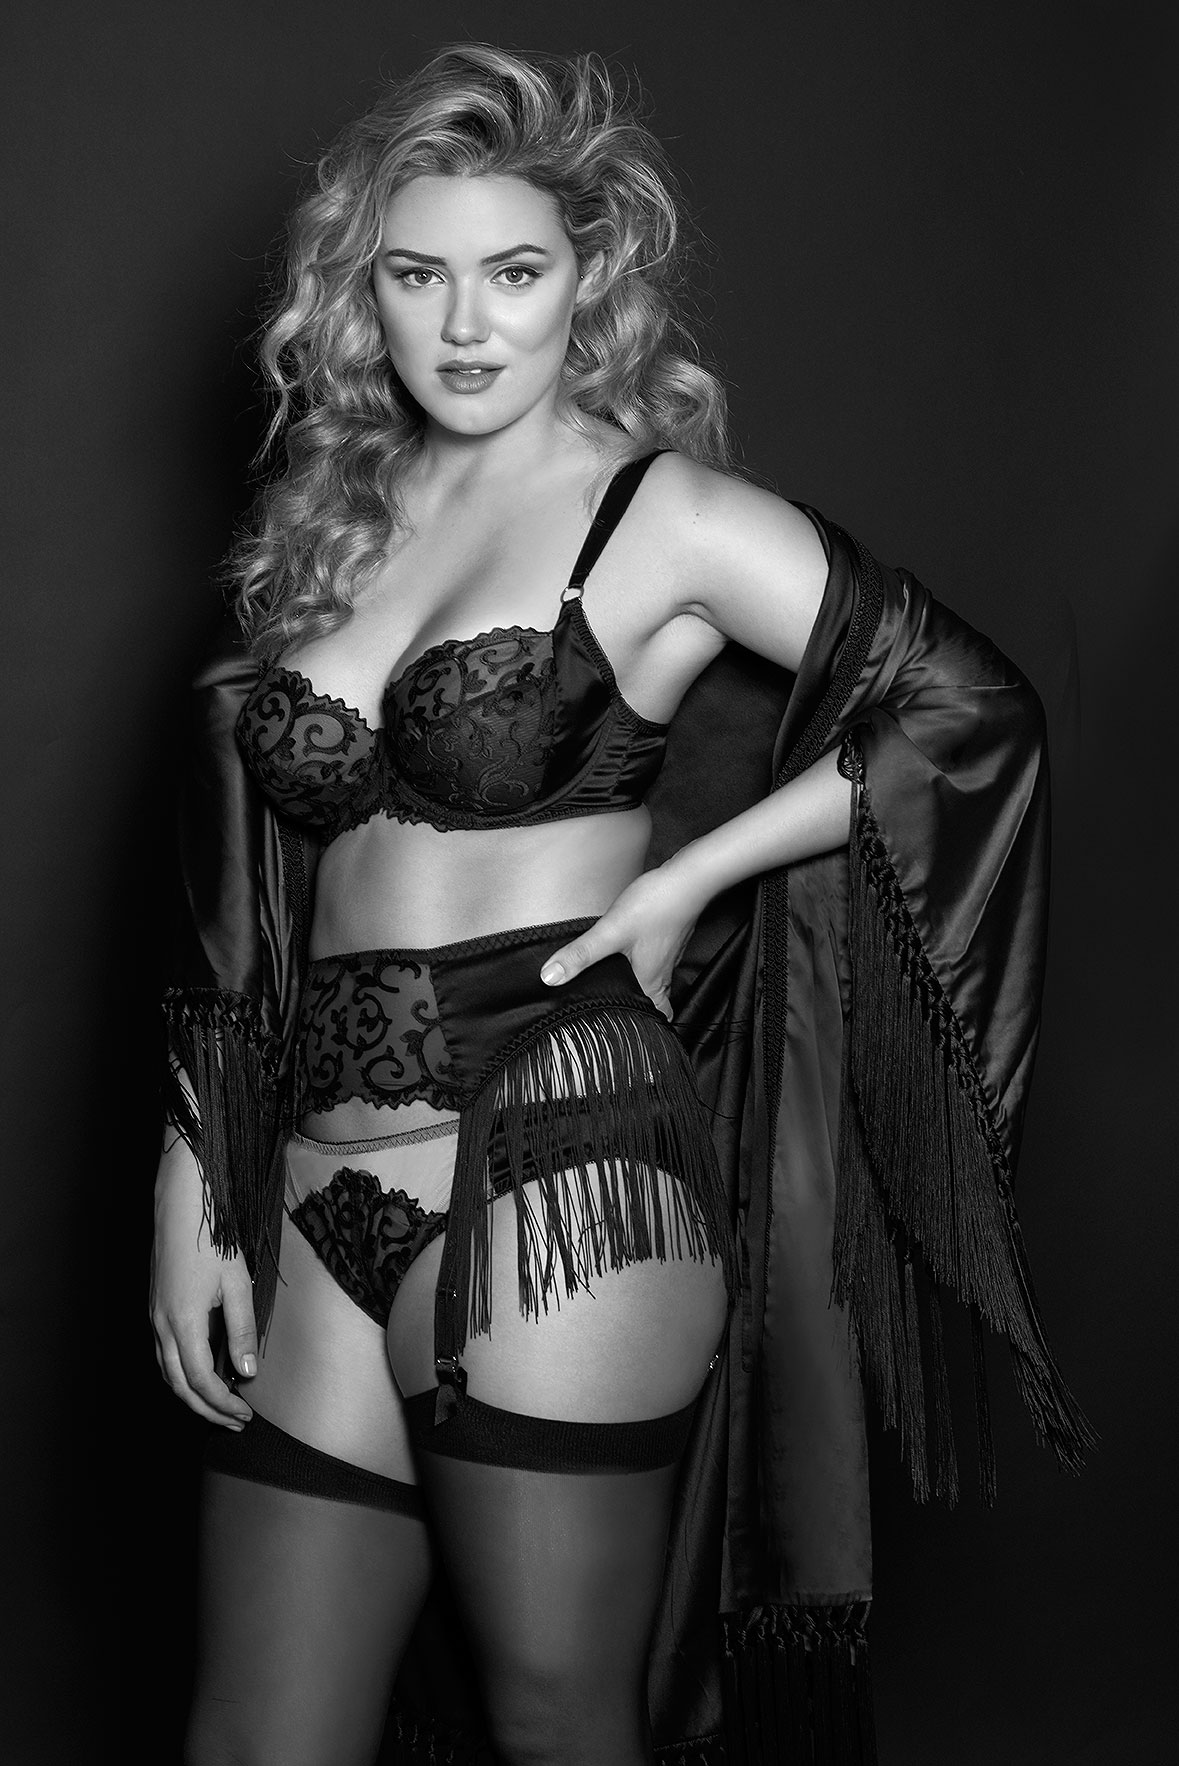 Lingerie-la-femme-larger-cup-lingerie-plus-size-model-kate-m-milk-models-harlow-and-fox-12